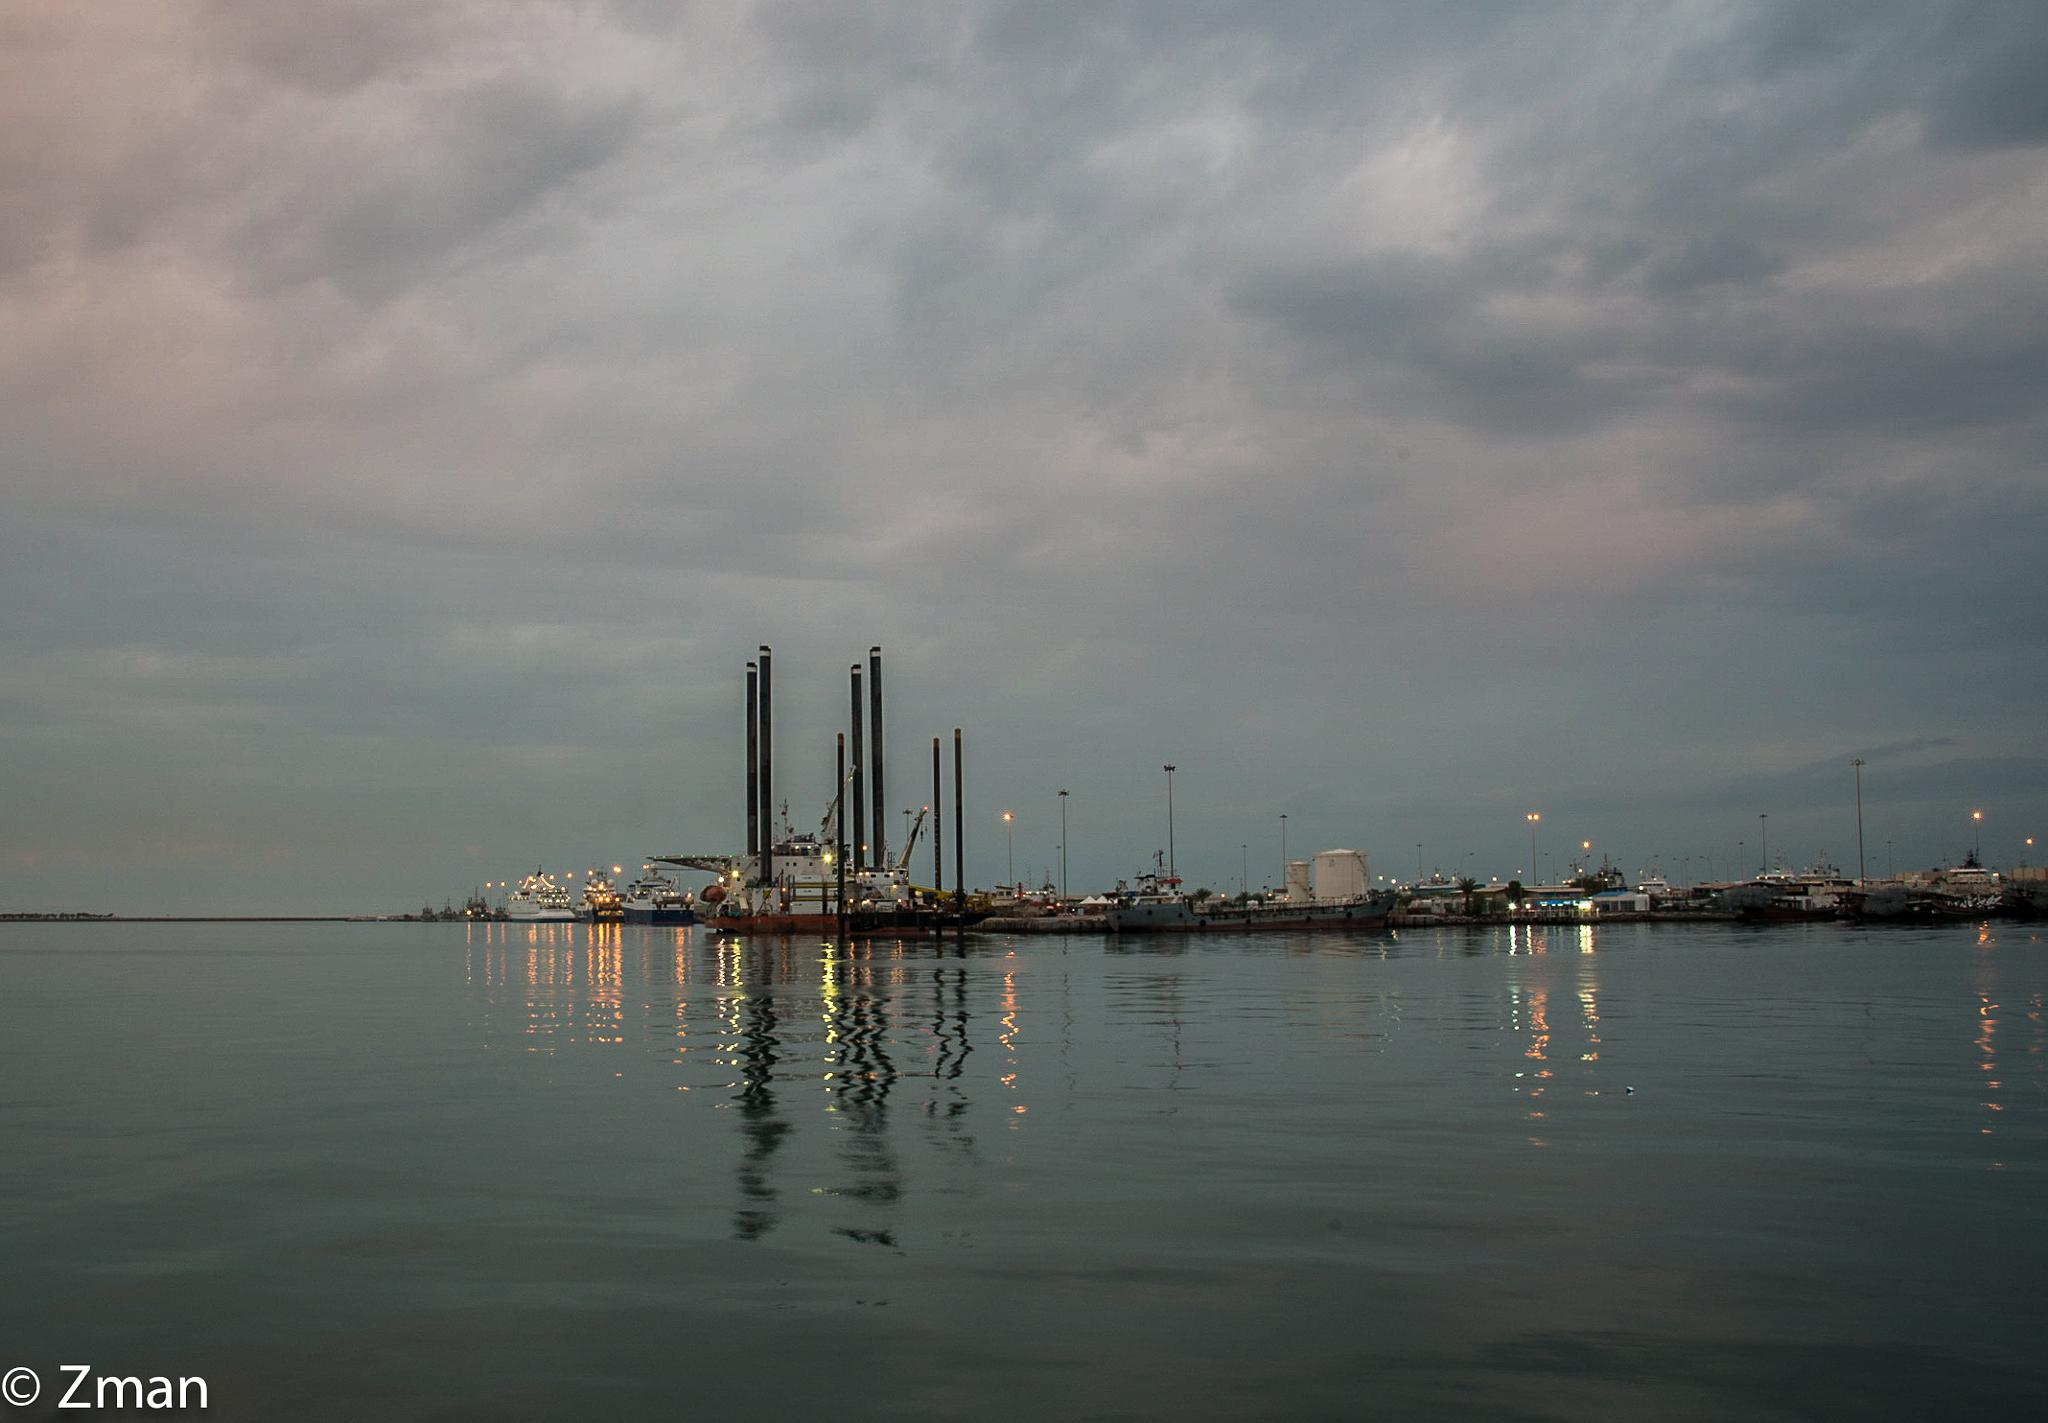 Oil Rig At Port by muhammad.nasser.963